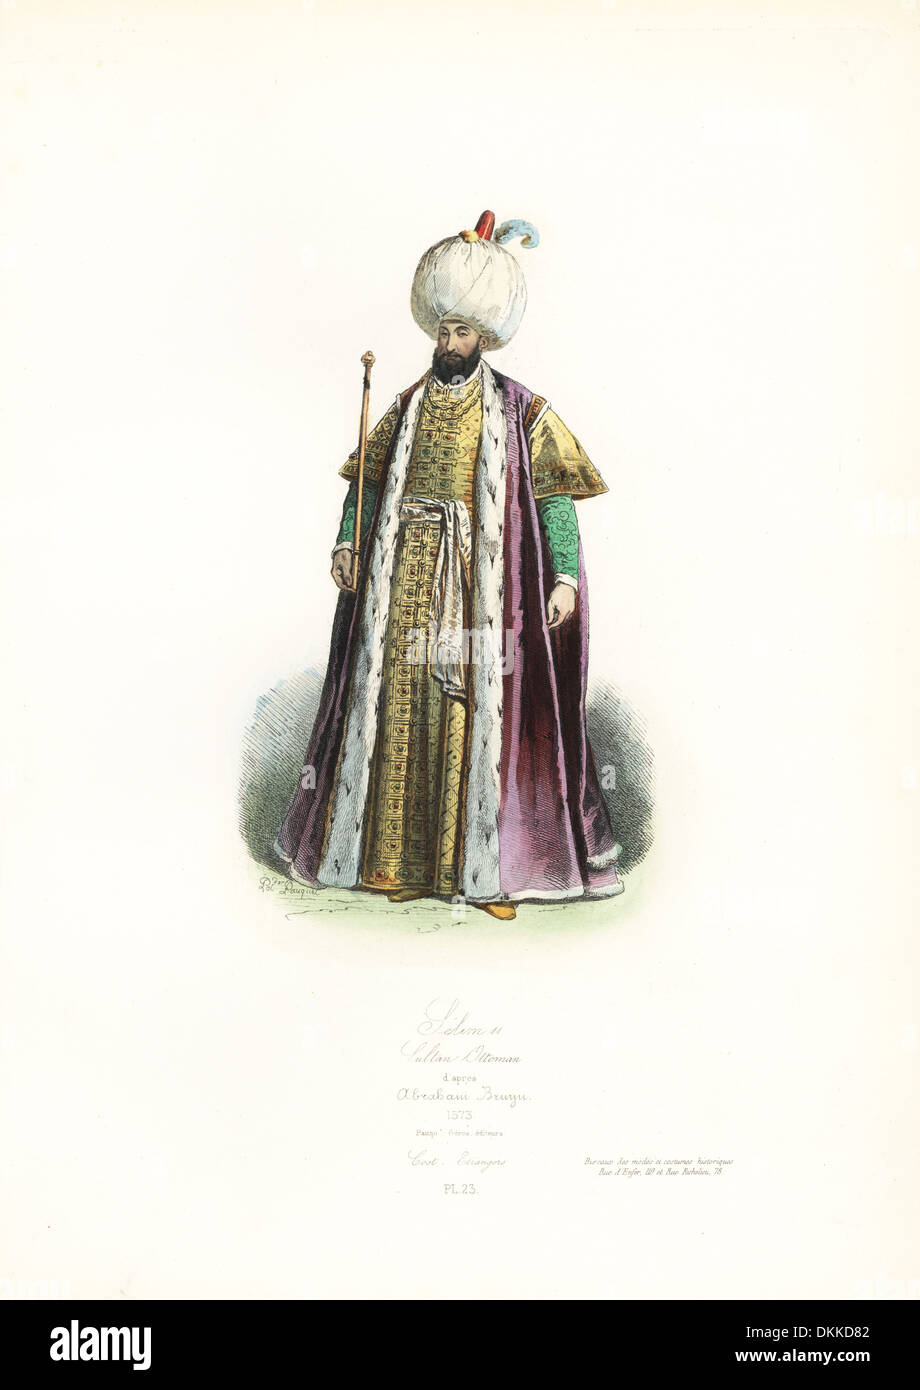 Selim II, Sultan of the Ottoman Empire, after Abraham de Bruyn, 1573. - Stock Image